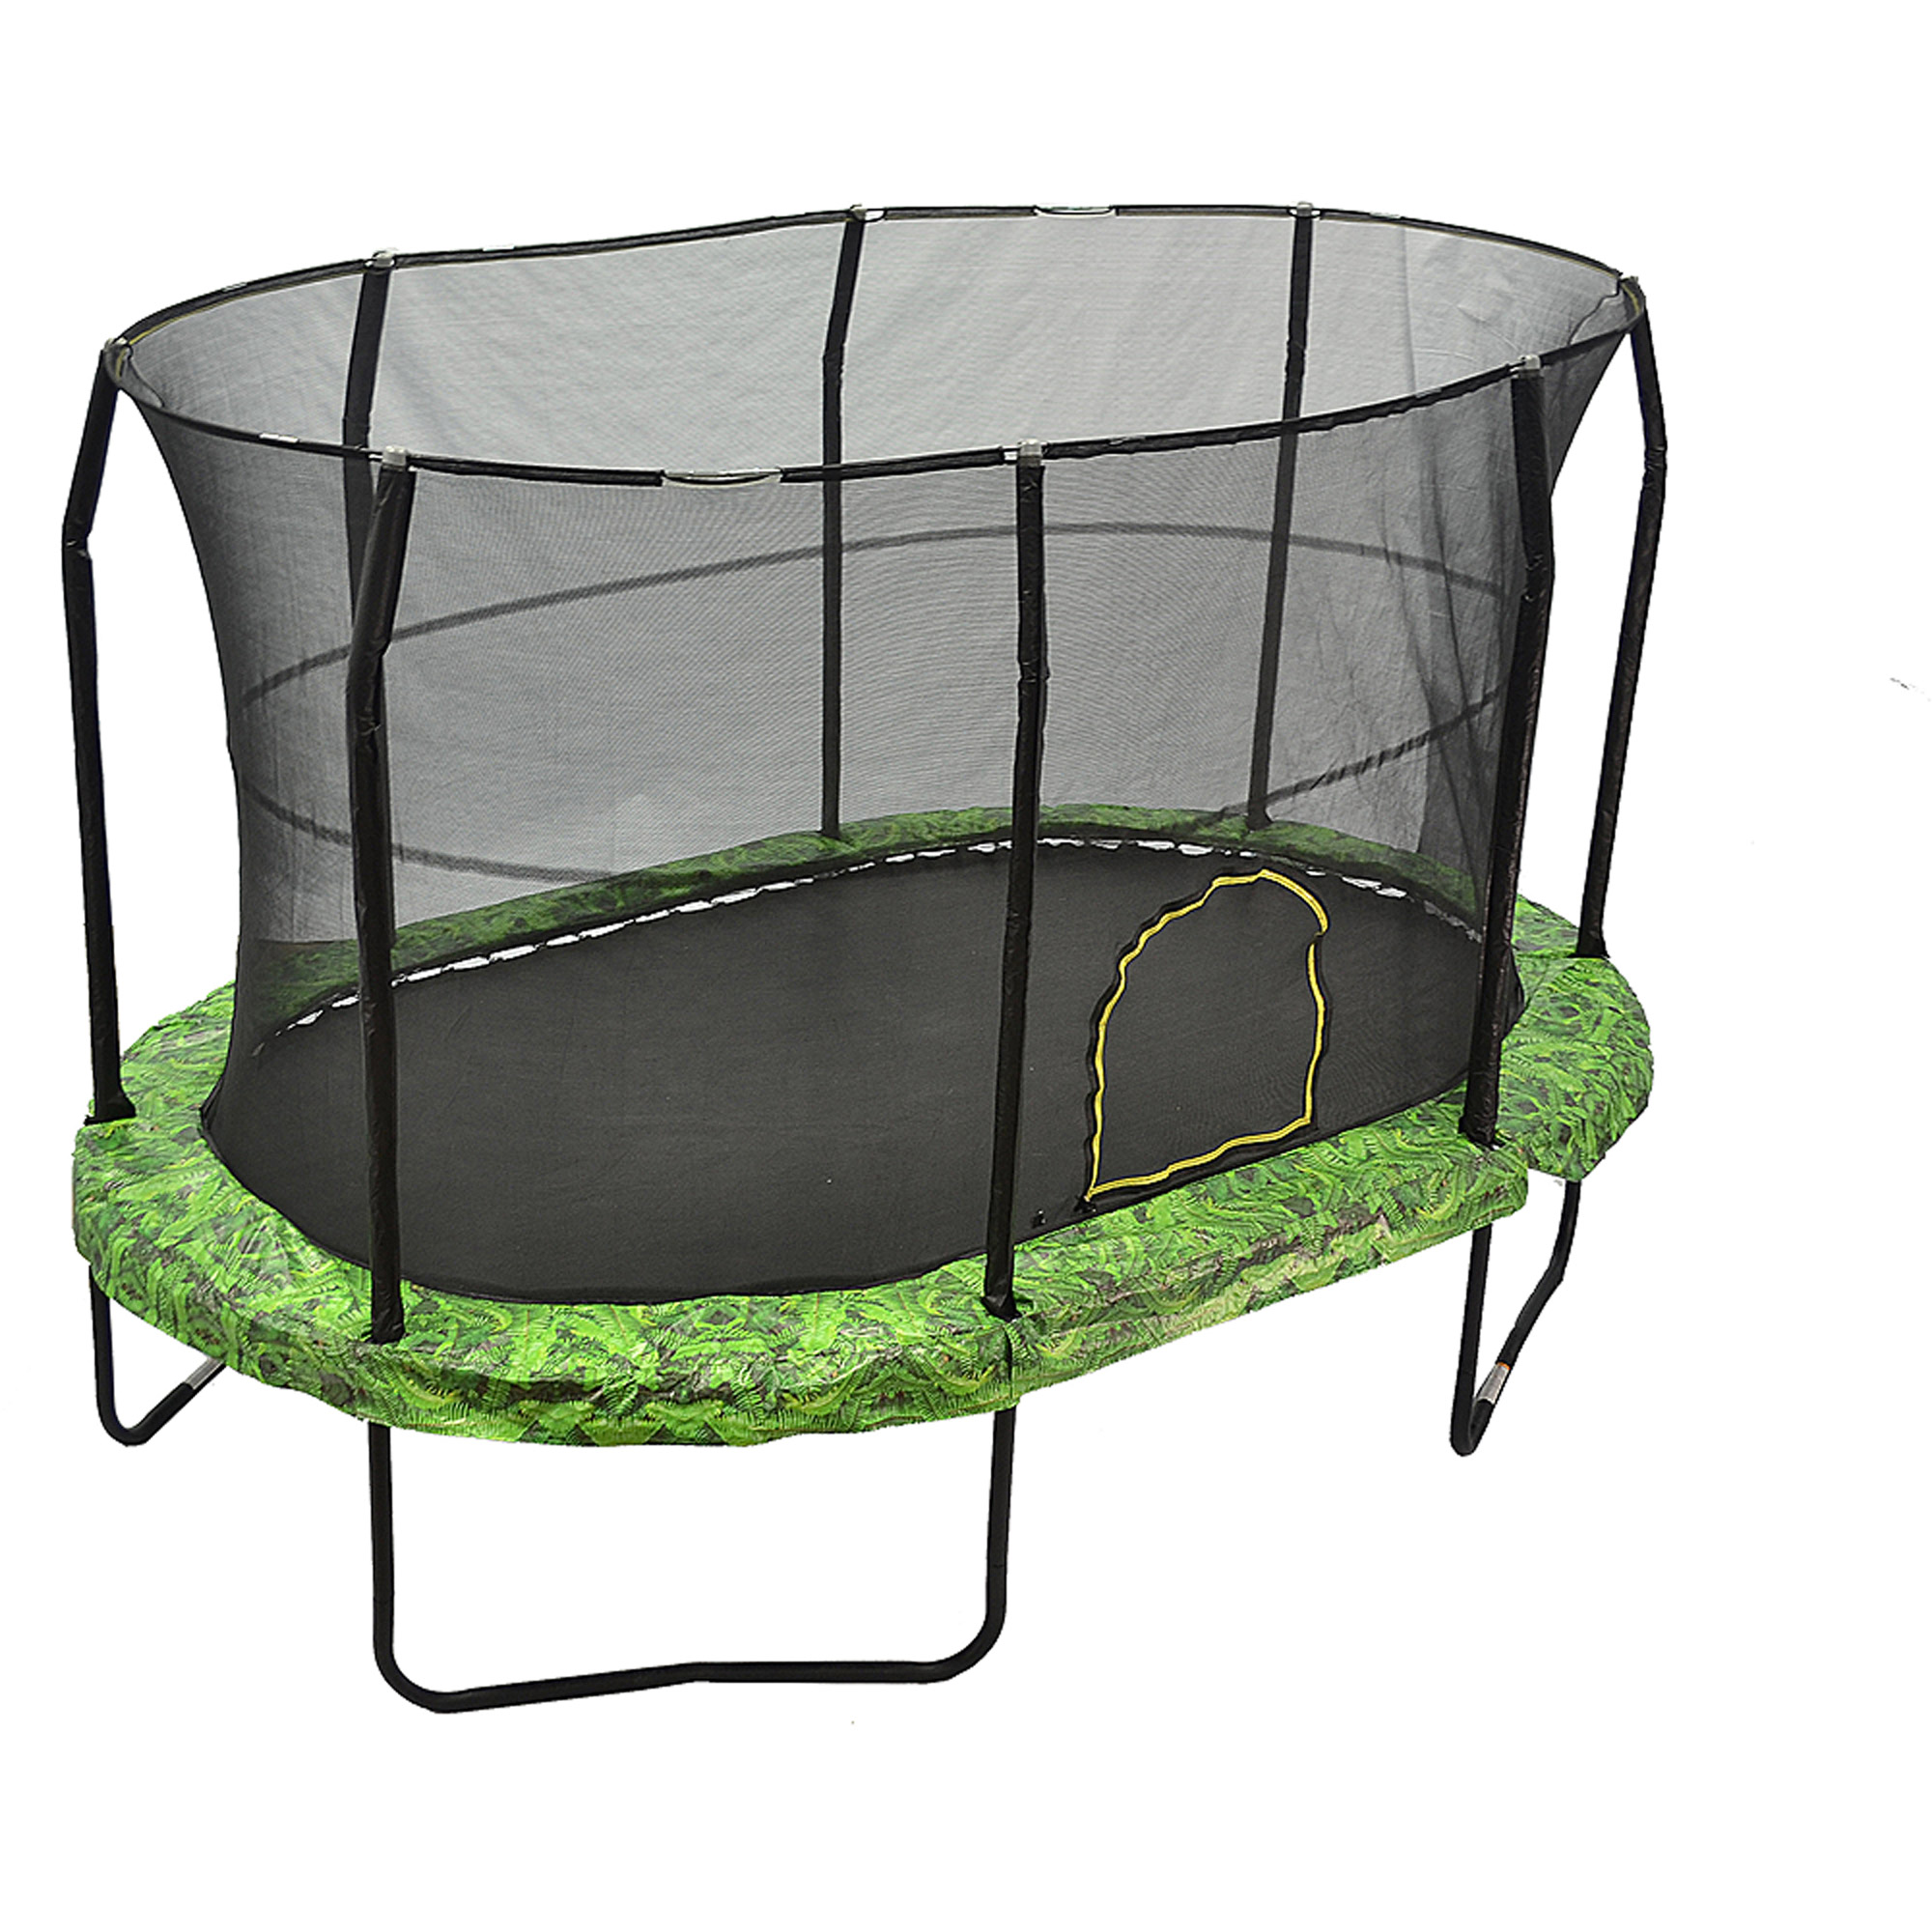 Jumpking Oval 9 x 14 Foot Trampoline, with Safety Enclosure, Green Fern Pattern (Box 1 of 2)